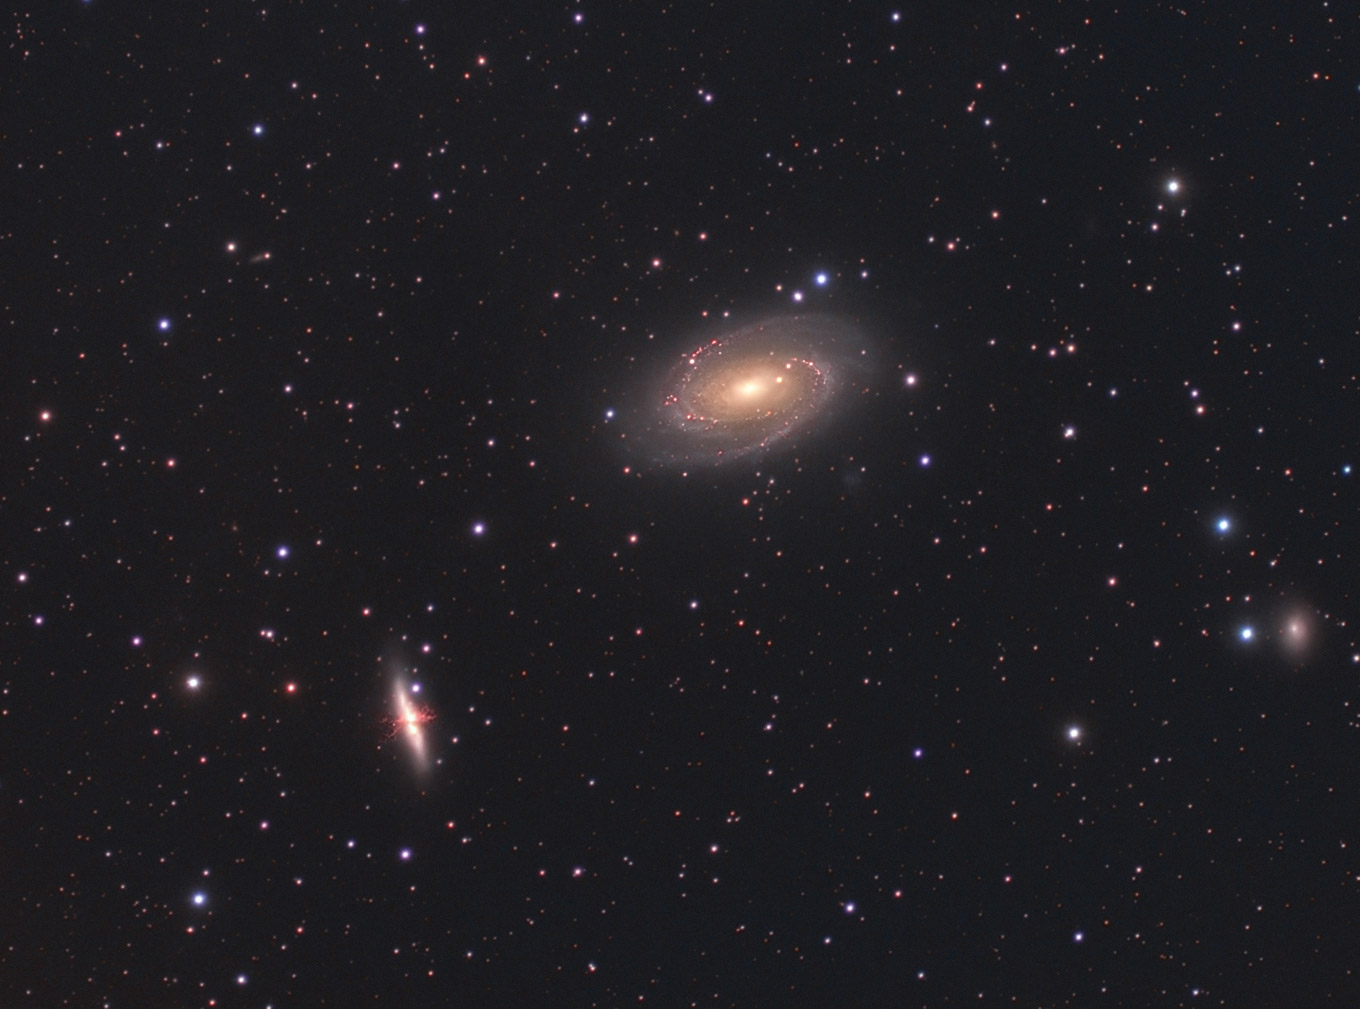 Les galaxies M81 et M82